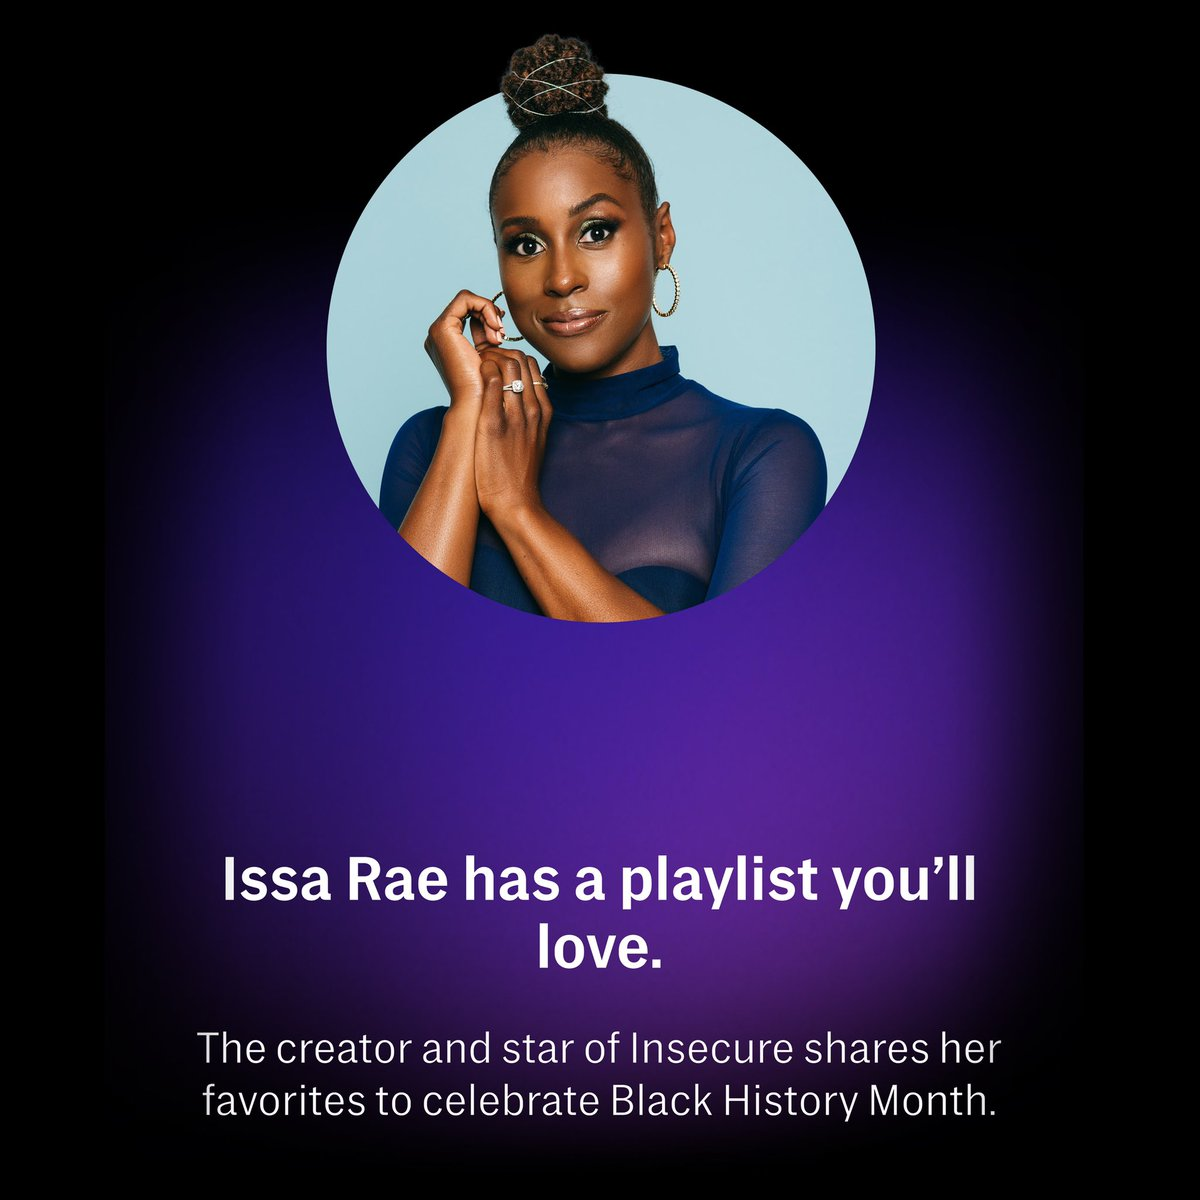 Jonesing for more content? We got y'all!  Dive into a personally curated watchlist of iconic titles on @hbomax from #InsecureHBO creator @IssaRae.   Love Jones, I May Destroy You, Being Serena & more available all month